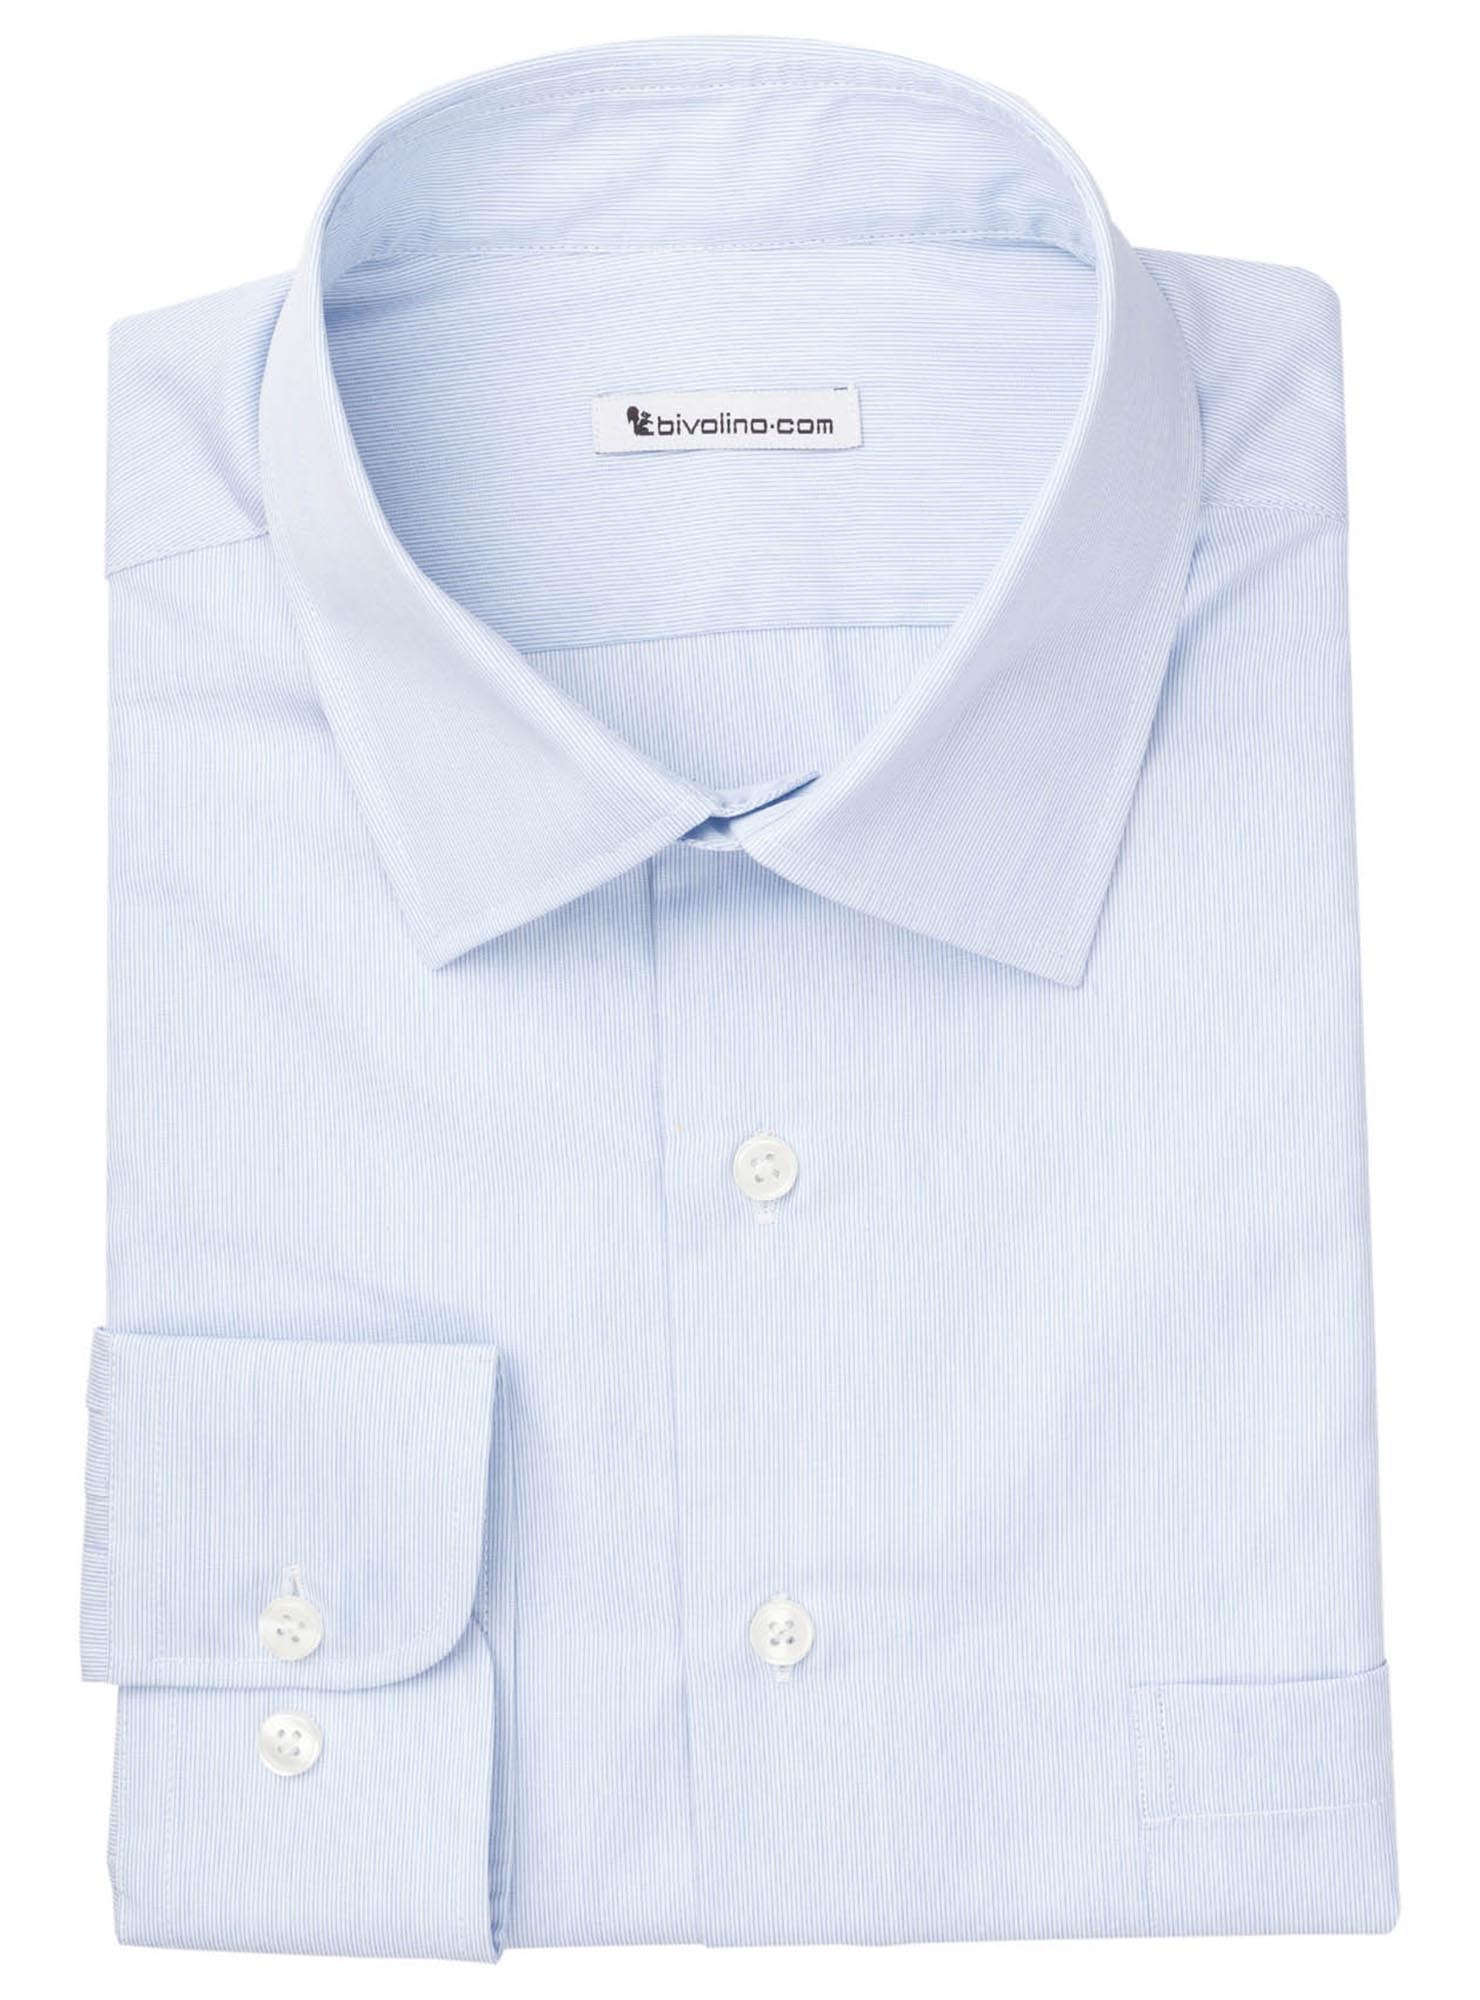 VERGIANO  - Men's shrit cotton milleraye - DORCA 5